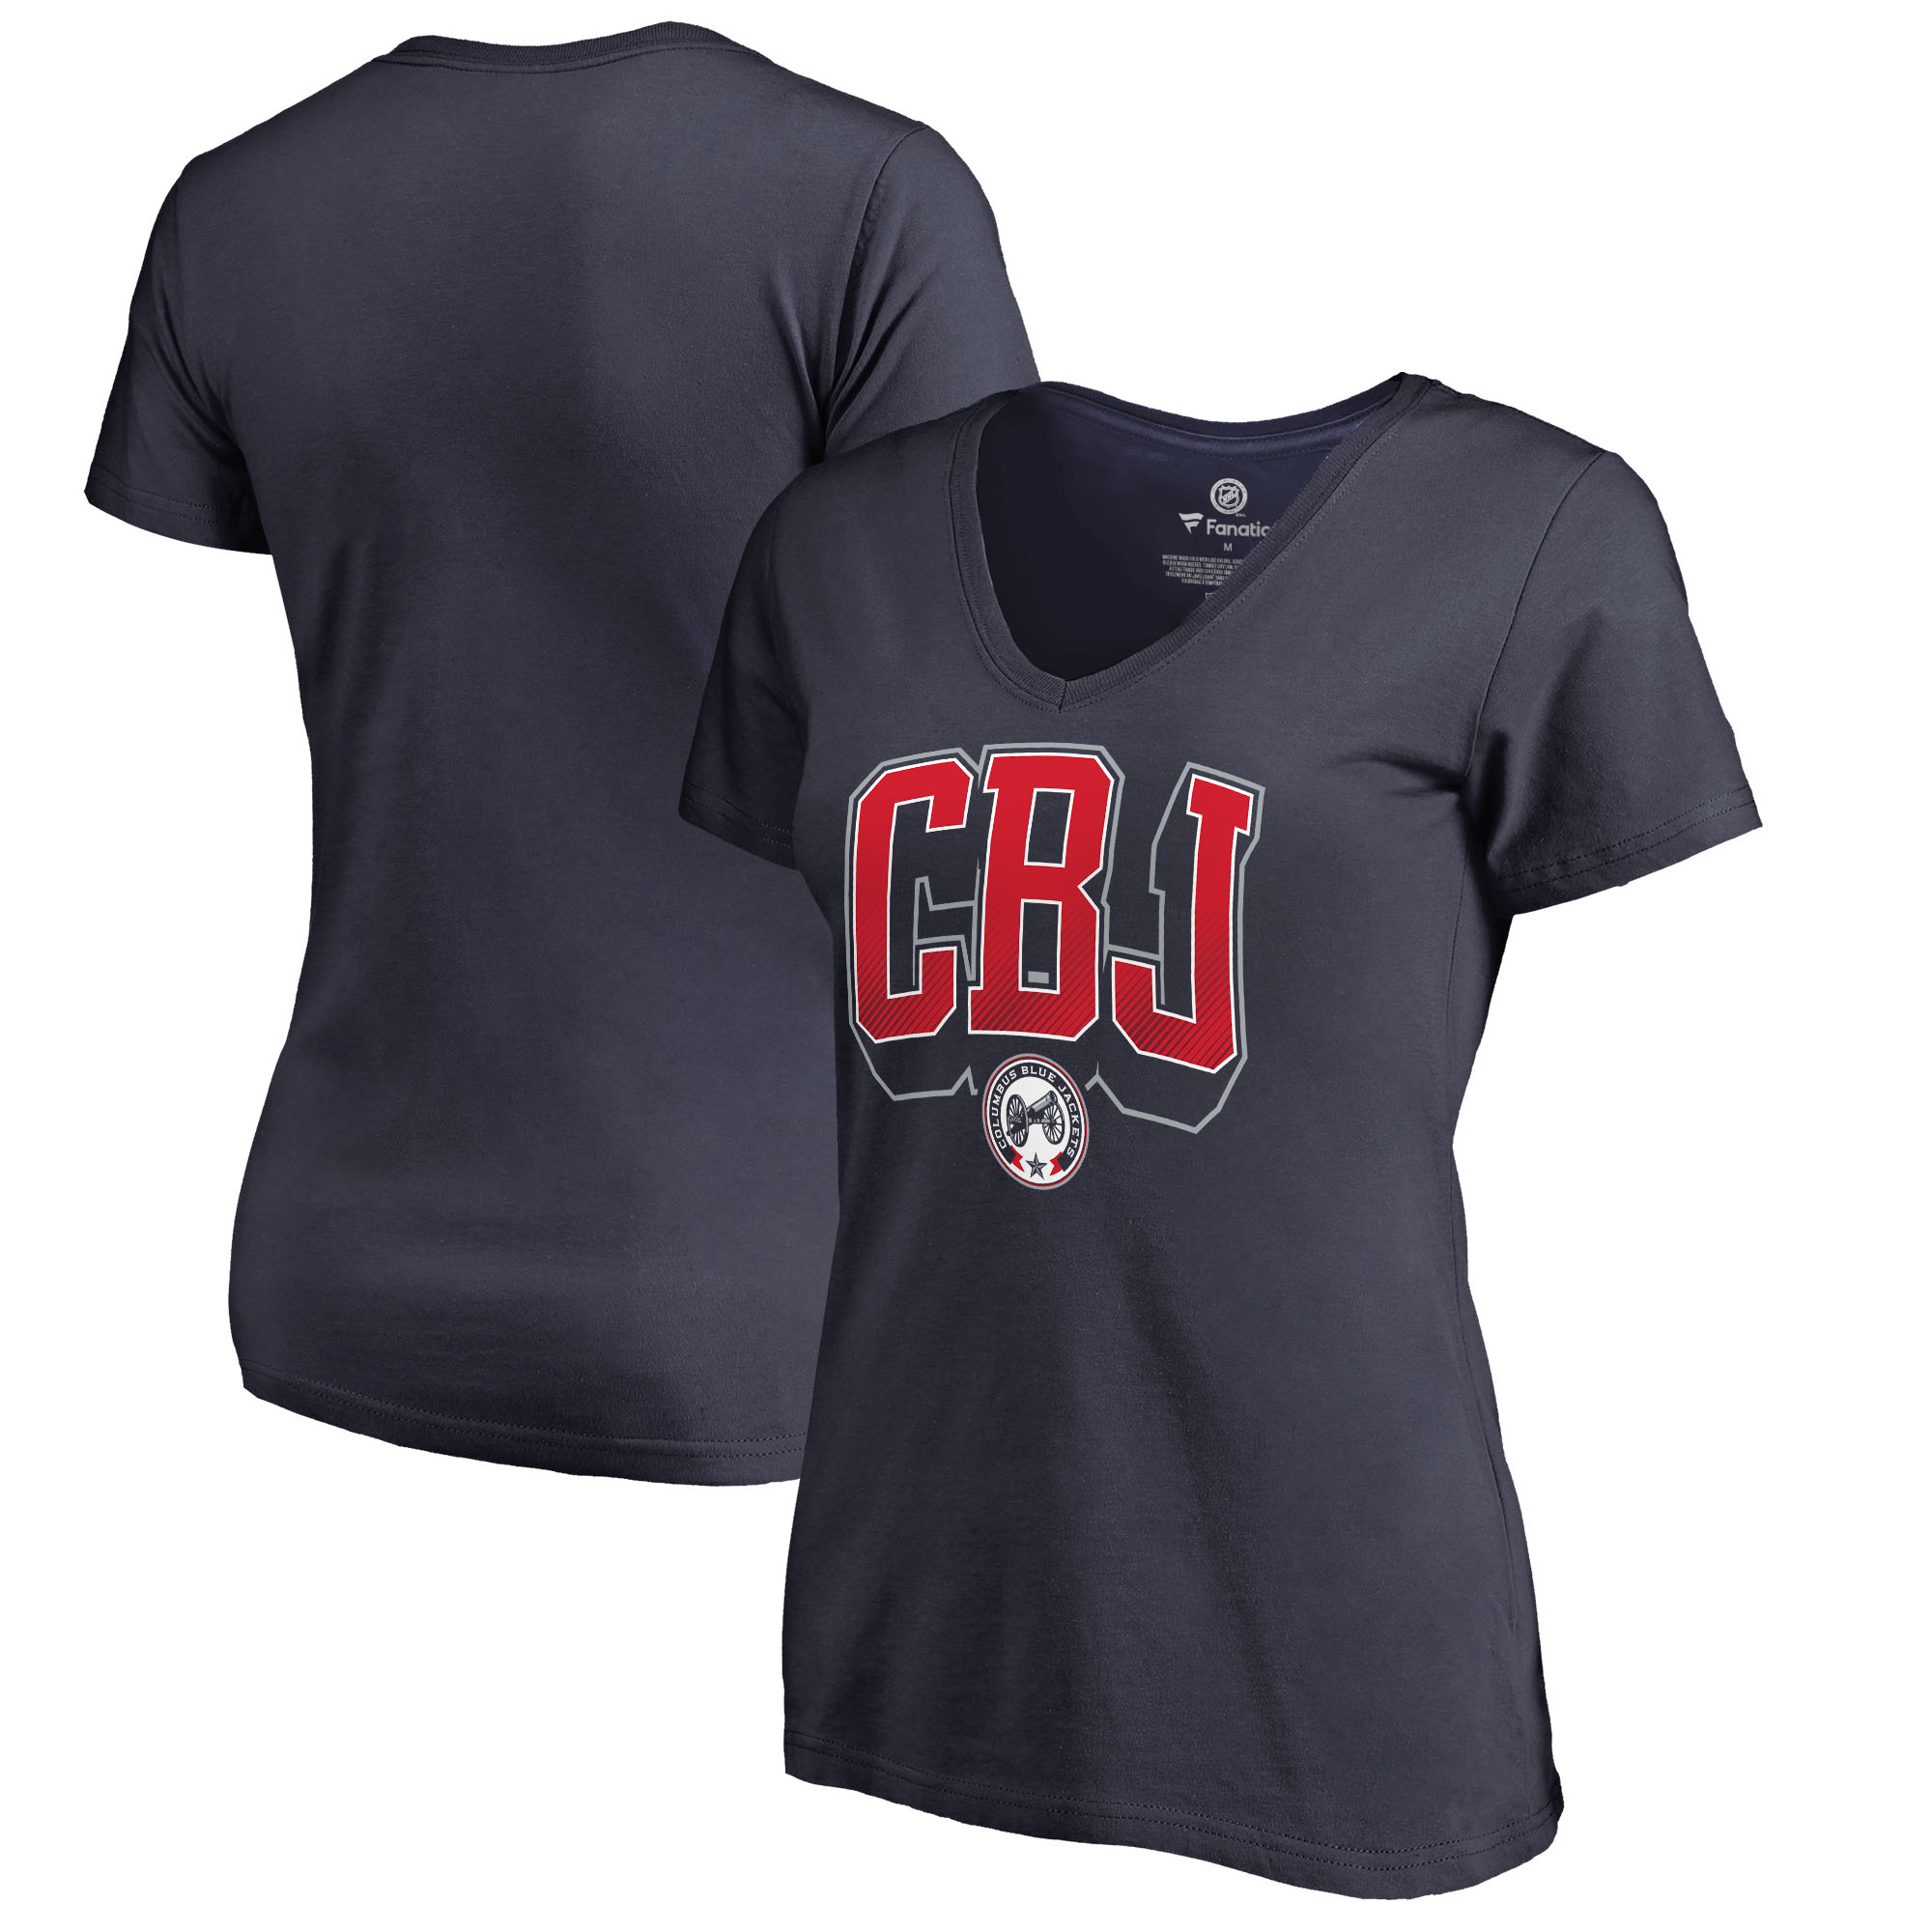 Columbus Blue Jackets Fanatics Branded Women's Plus Size Hometown Collection V-Neck T-Shirt - Navy